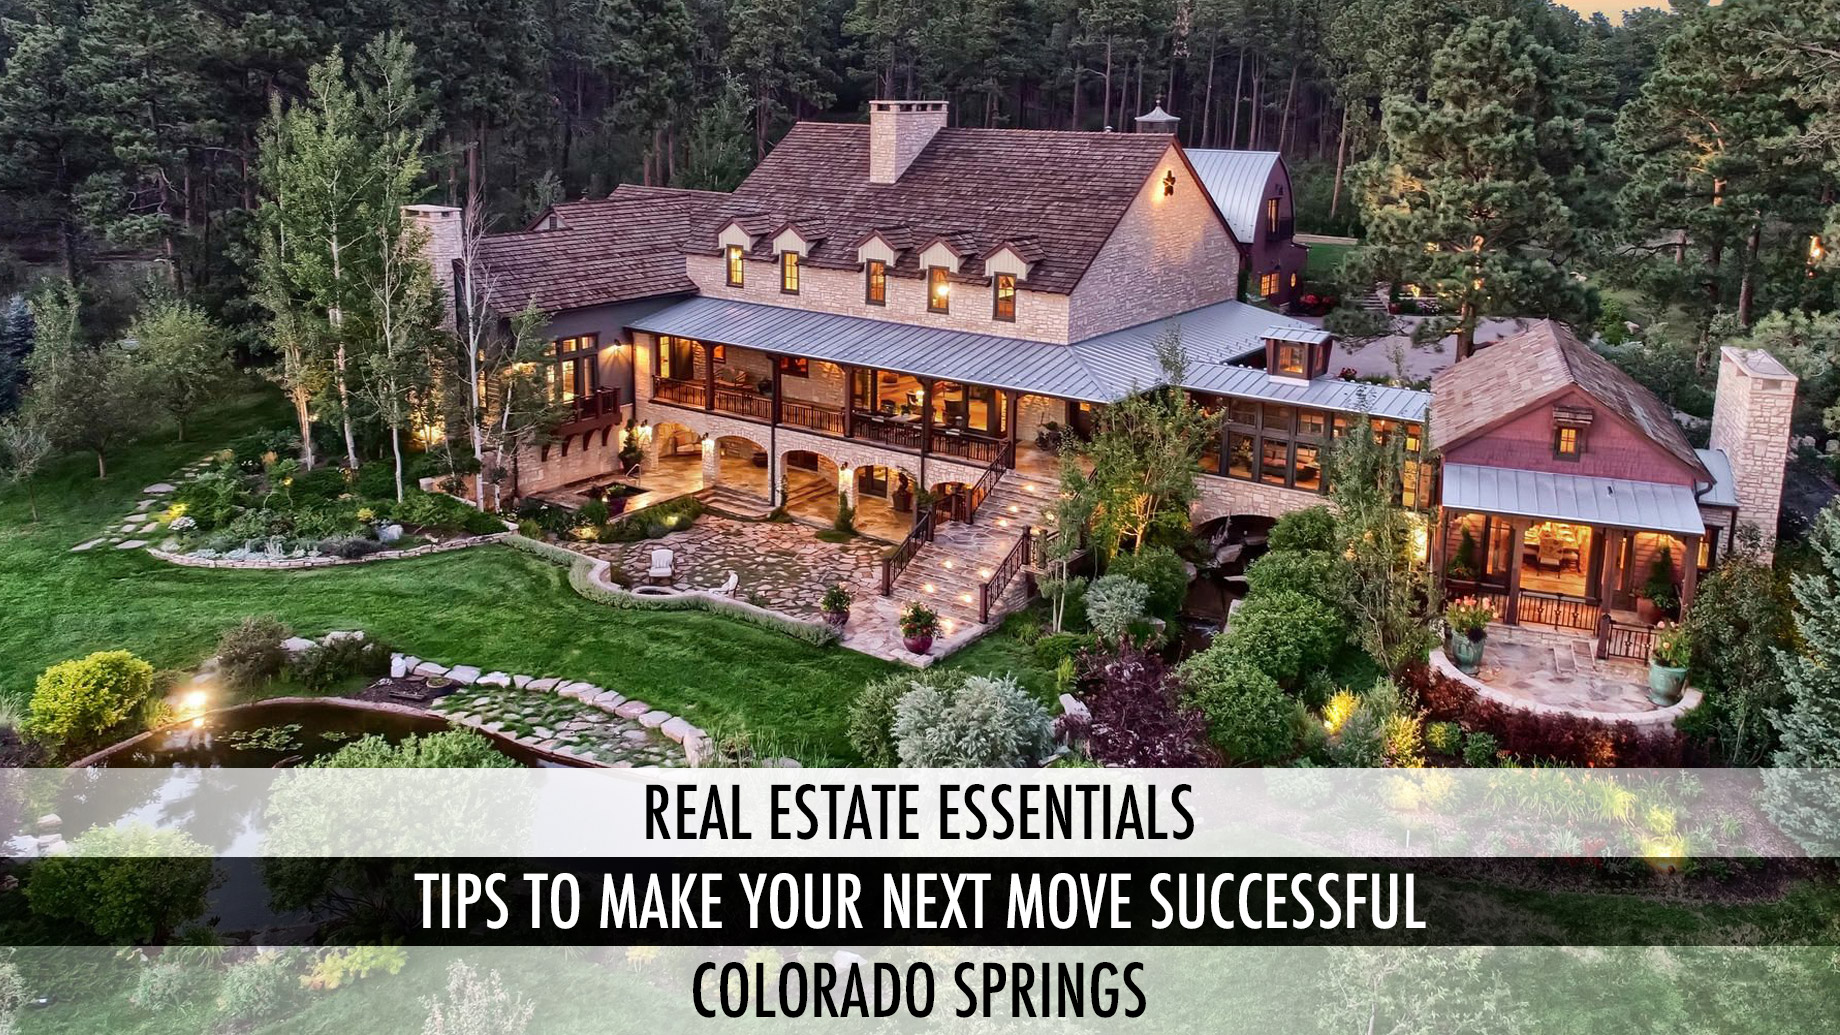 Real Estate Essentials - Tips From A Colorado Springs Moving Company To Make Your Next Move Successful